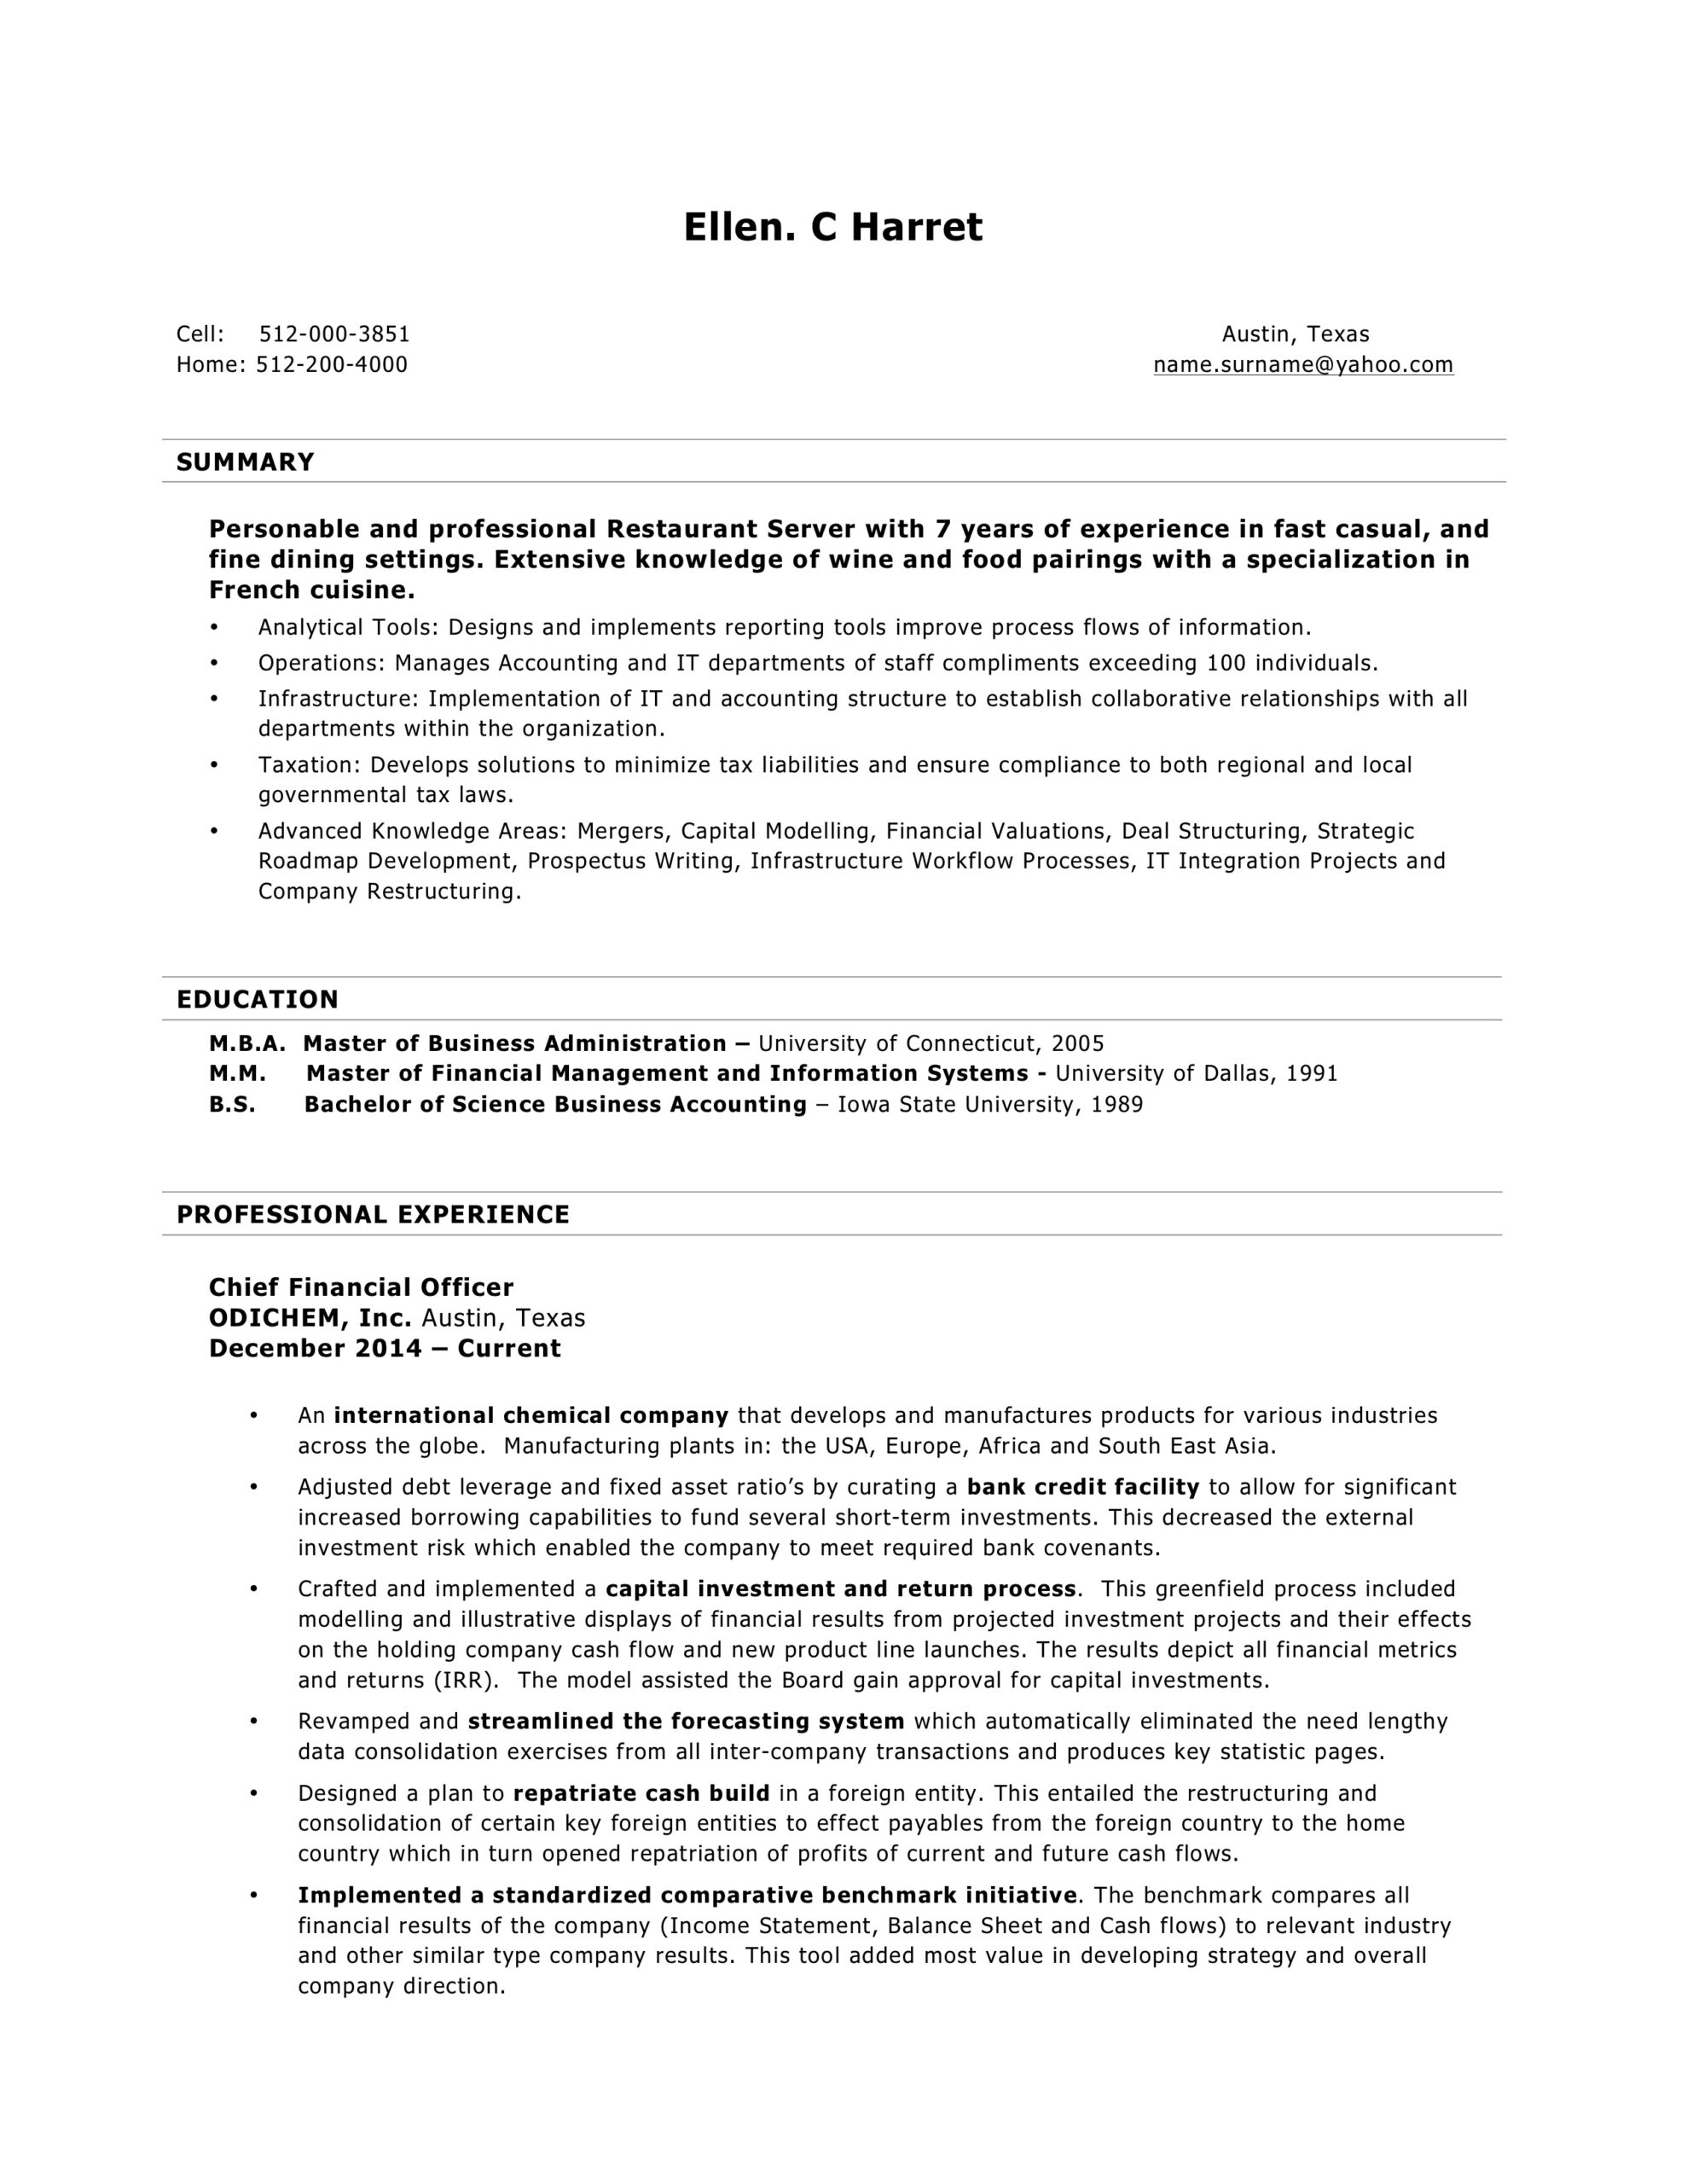 free word resume templates in ms standard template server education project manager home Resume Standard Resume Template Word